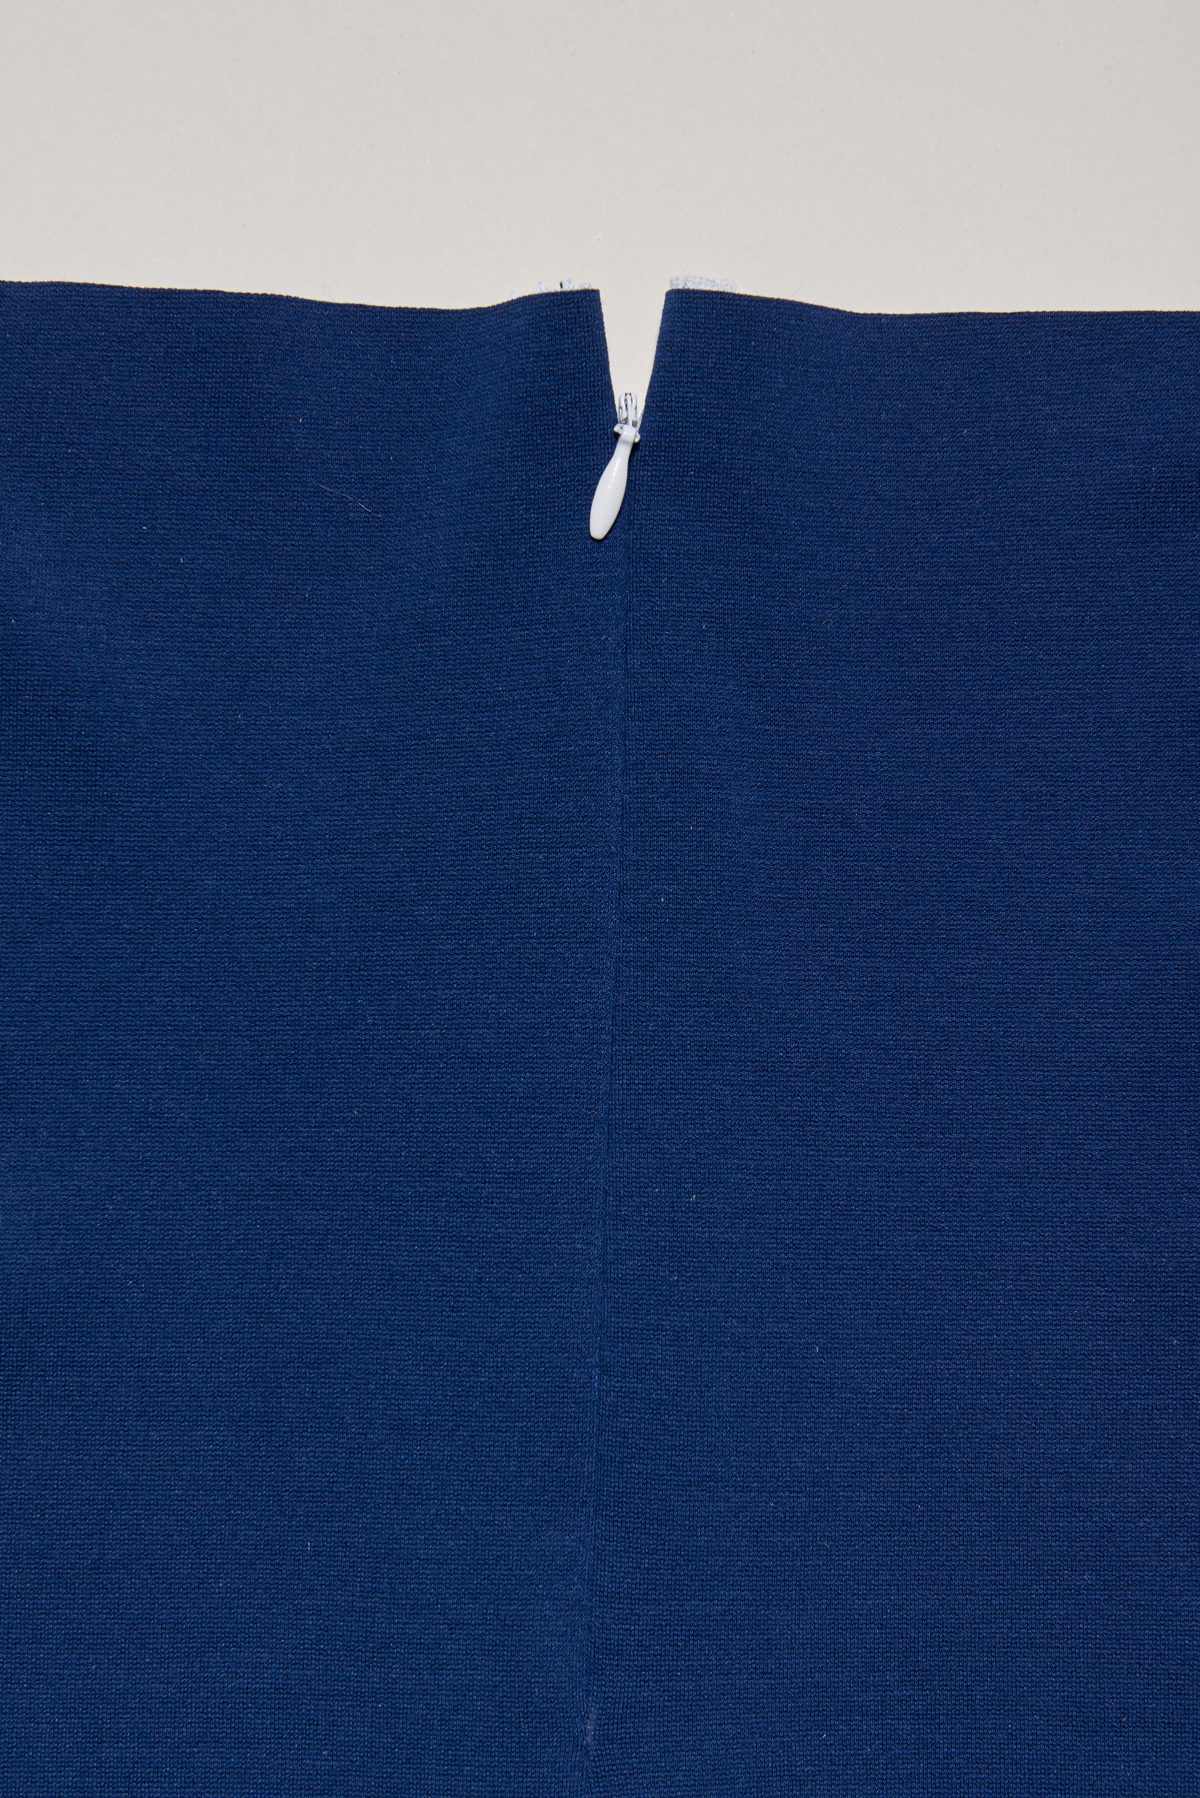 sew an invisible zipper in knits 4